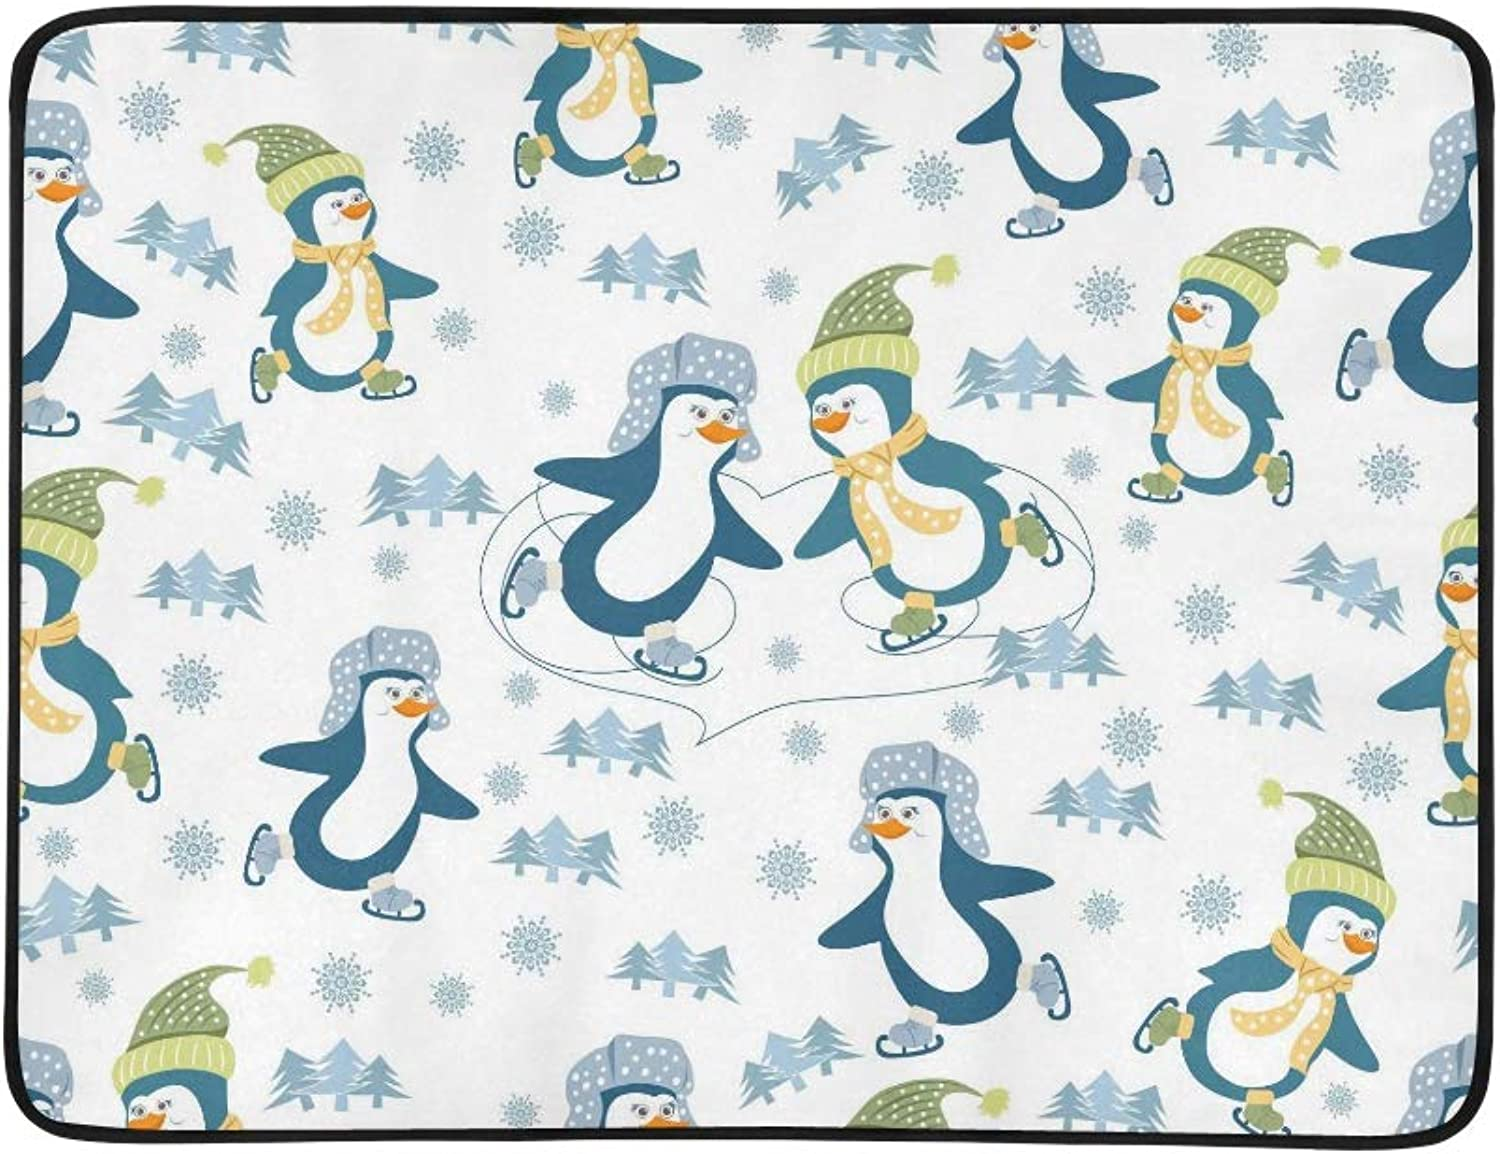 Winter Sport Animal Penguin Tree Snowflake Pattern Portable and Foldable Blanket Mat 60x78 Inch Handy Mat for Camping Picnic Beach Indoor Outdoor Travel